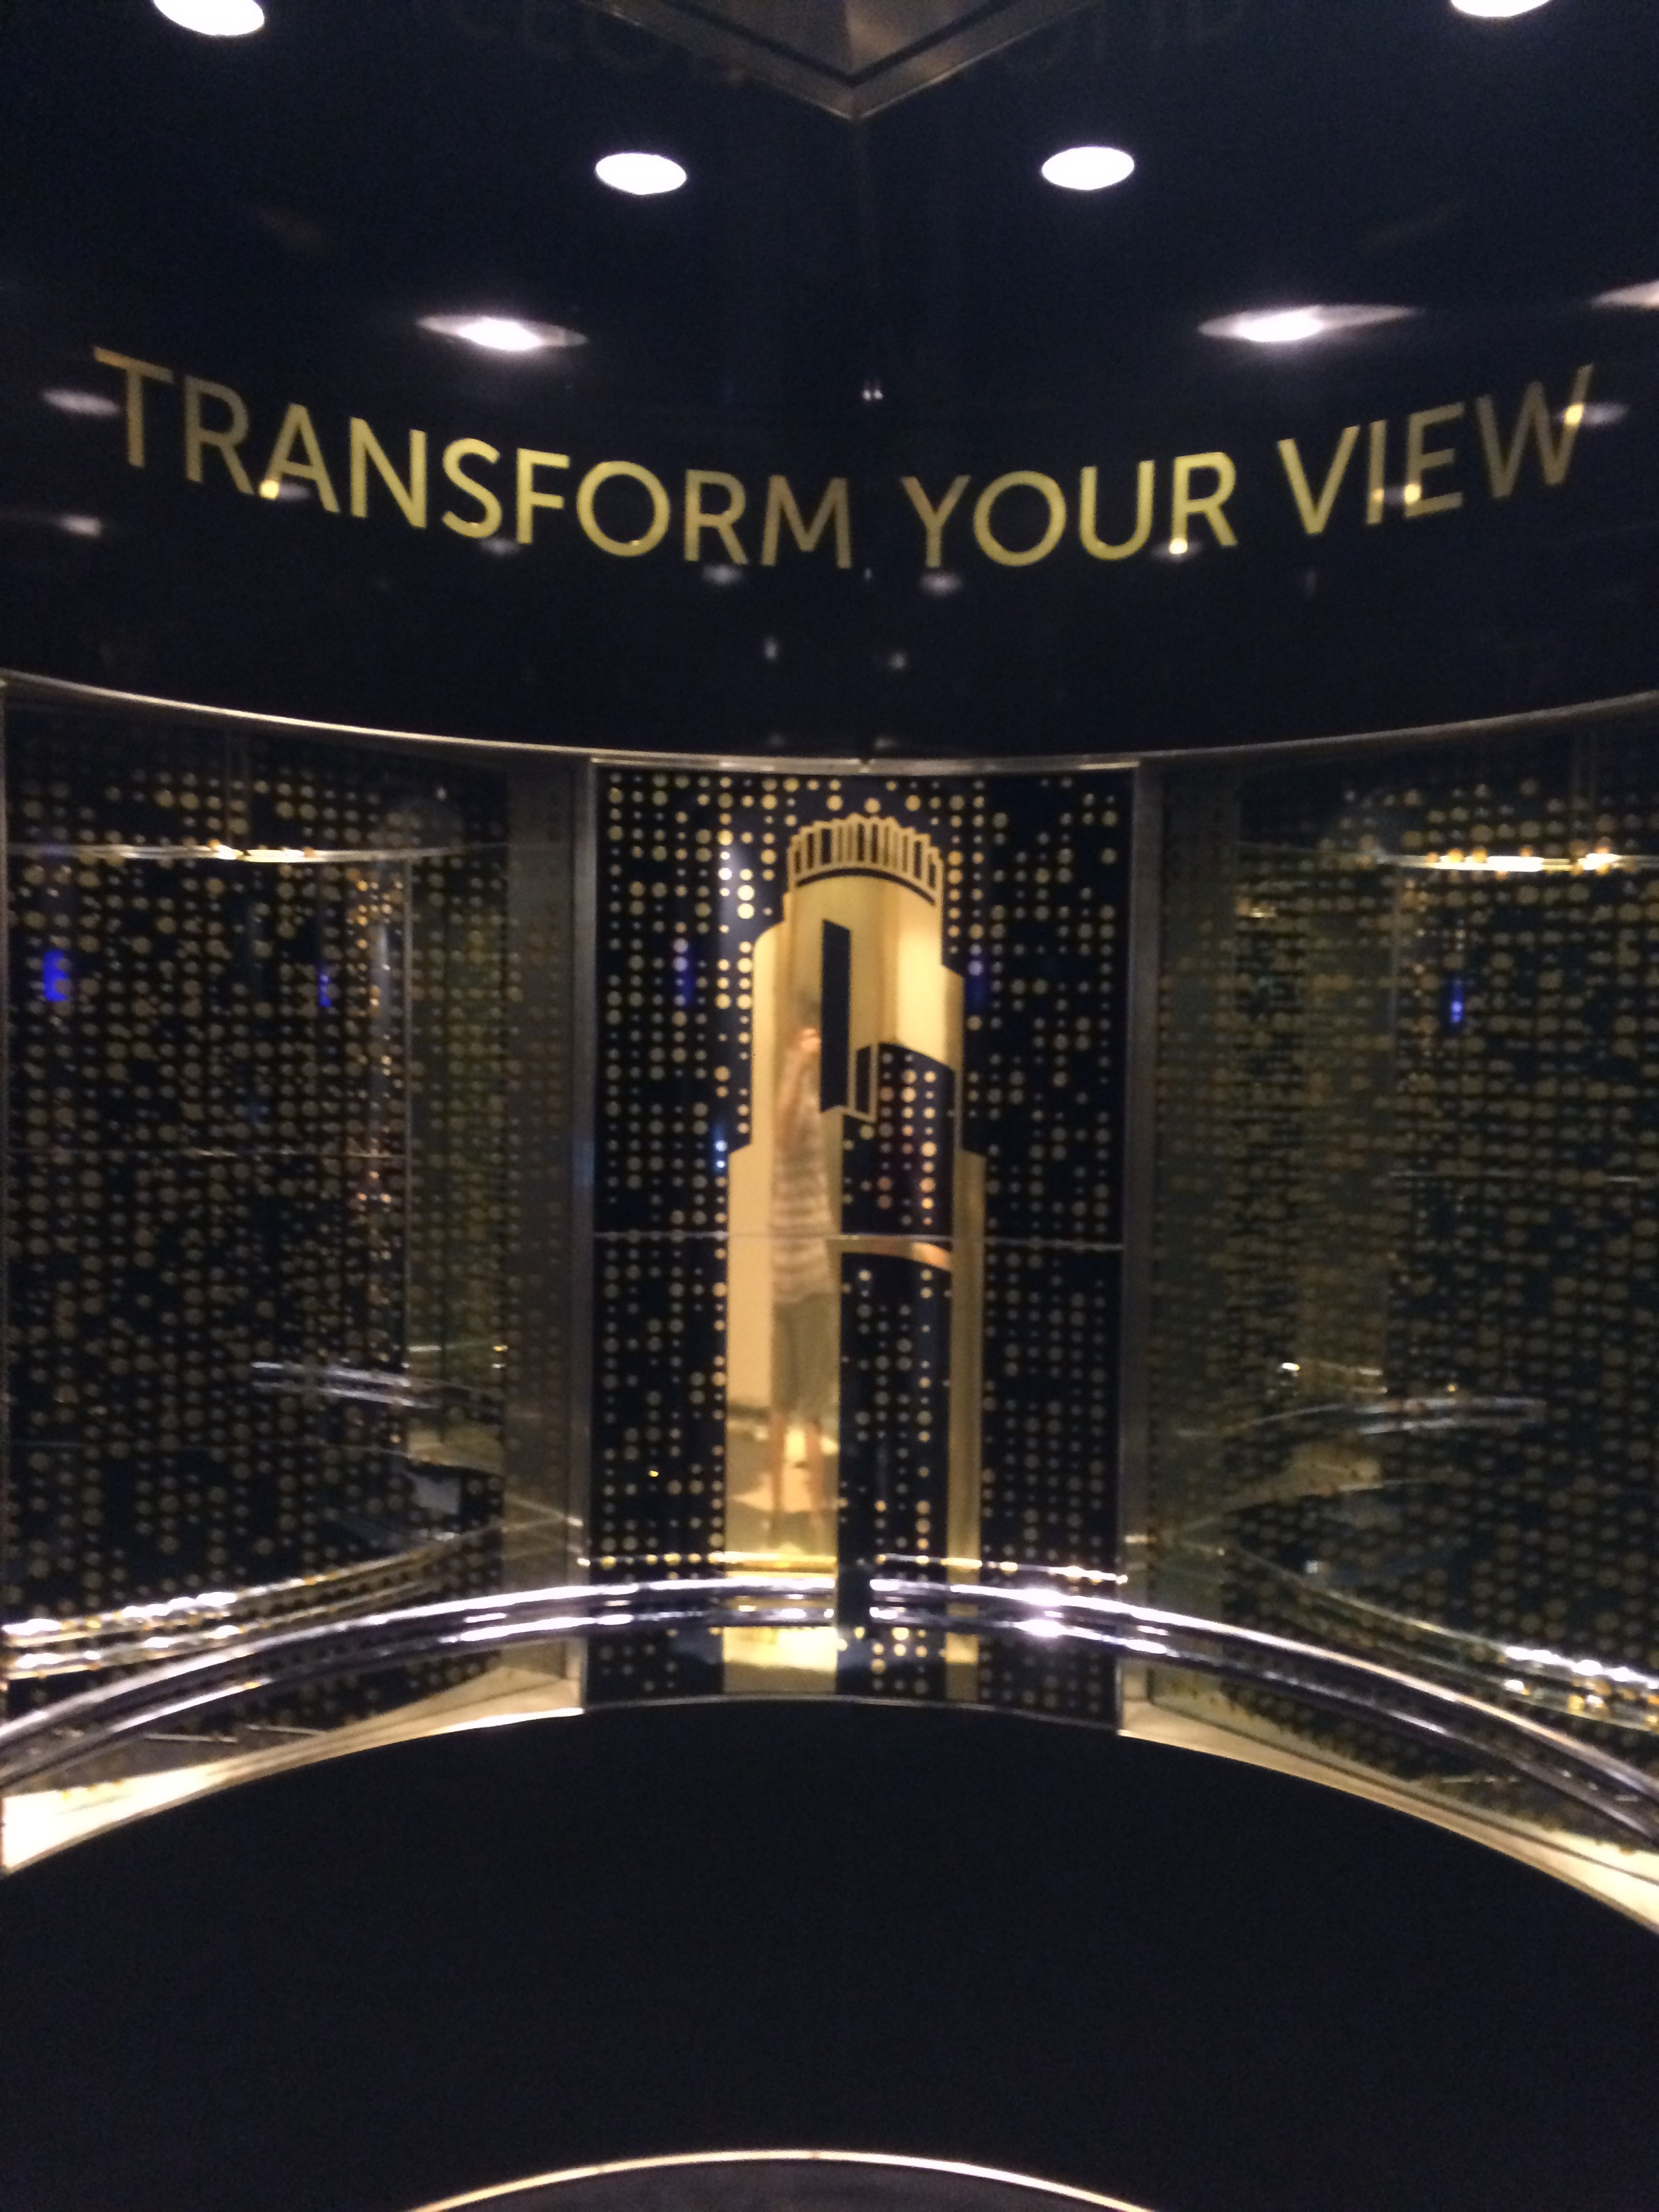 High-speed elevators bring visitors to the 54th, 69th, and 70th floors which are part of the attractions.